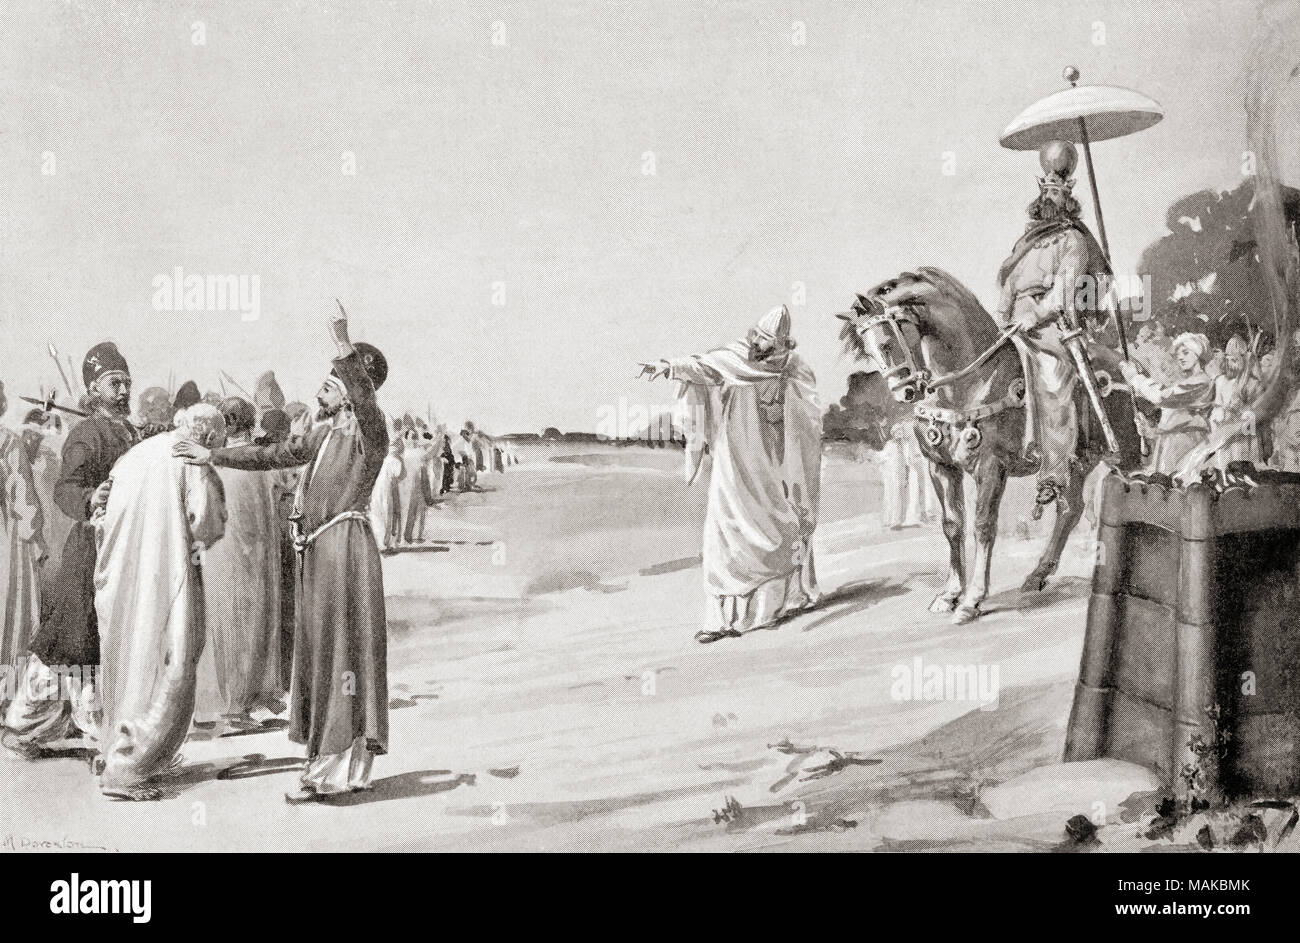 The persecution of Christians during the reign of Shapur II.  Shapur II, aka Shapur II the Great, 309 - 379.  Tenth Shahanshah or Shah of the Sasanian Empire.  After the painting by Margaret Dovaston, (1884-1954).  From Hutchinson's History of the Nations, published 1915 - Stock Image